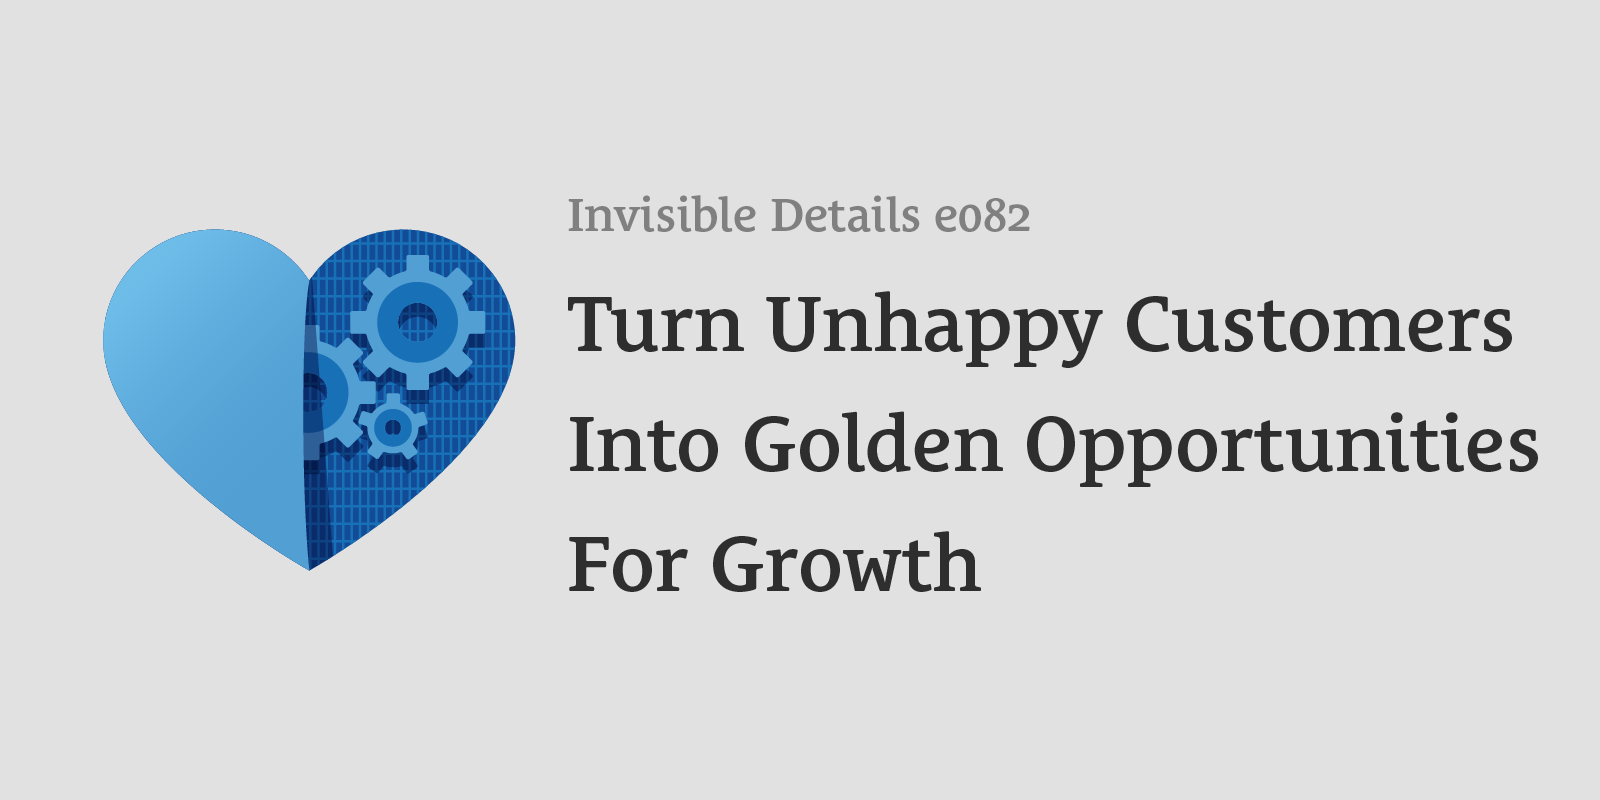 Turn Unhappy Customers Into Golden Opportunities For Growth